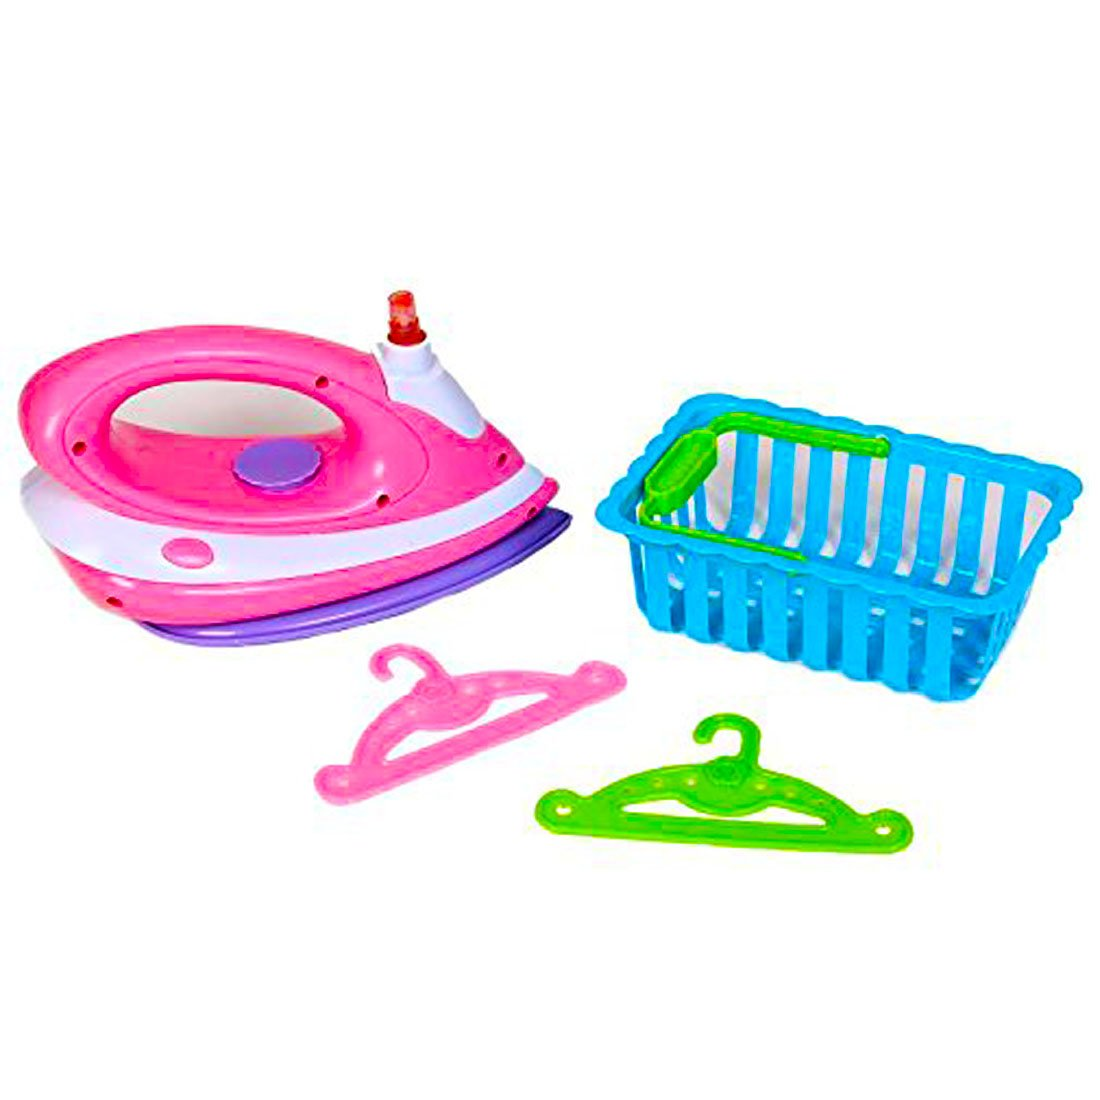 dazzling toys Toy Iron Set | Happy Family Kids Pretend Play Ironing Set Includes Ironer, Laundry Basket, and Accessories.